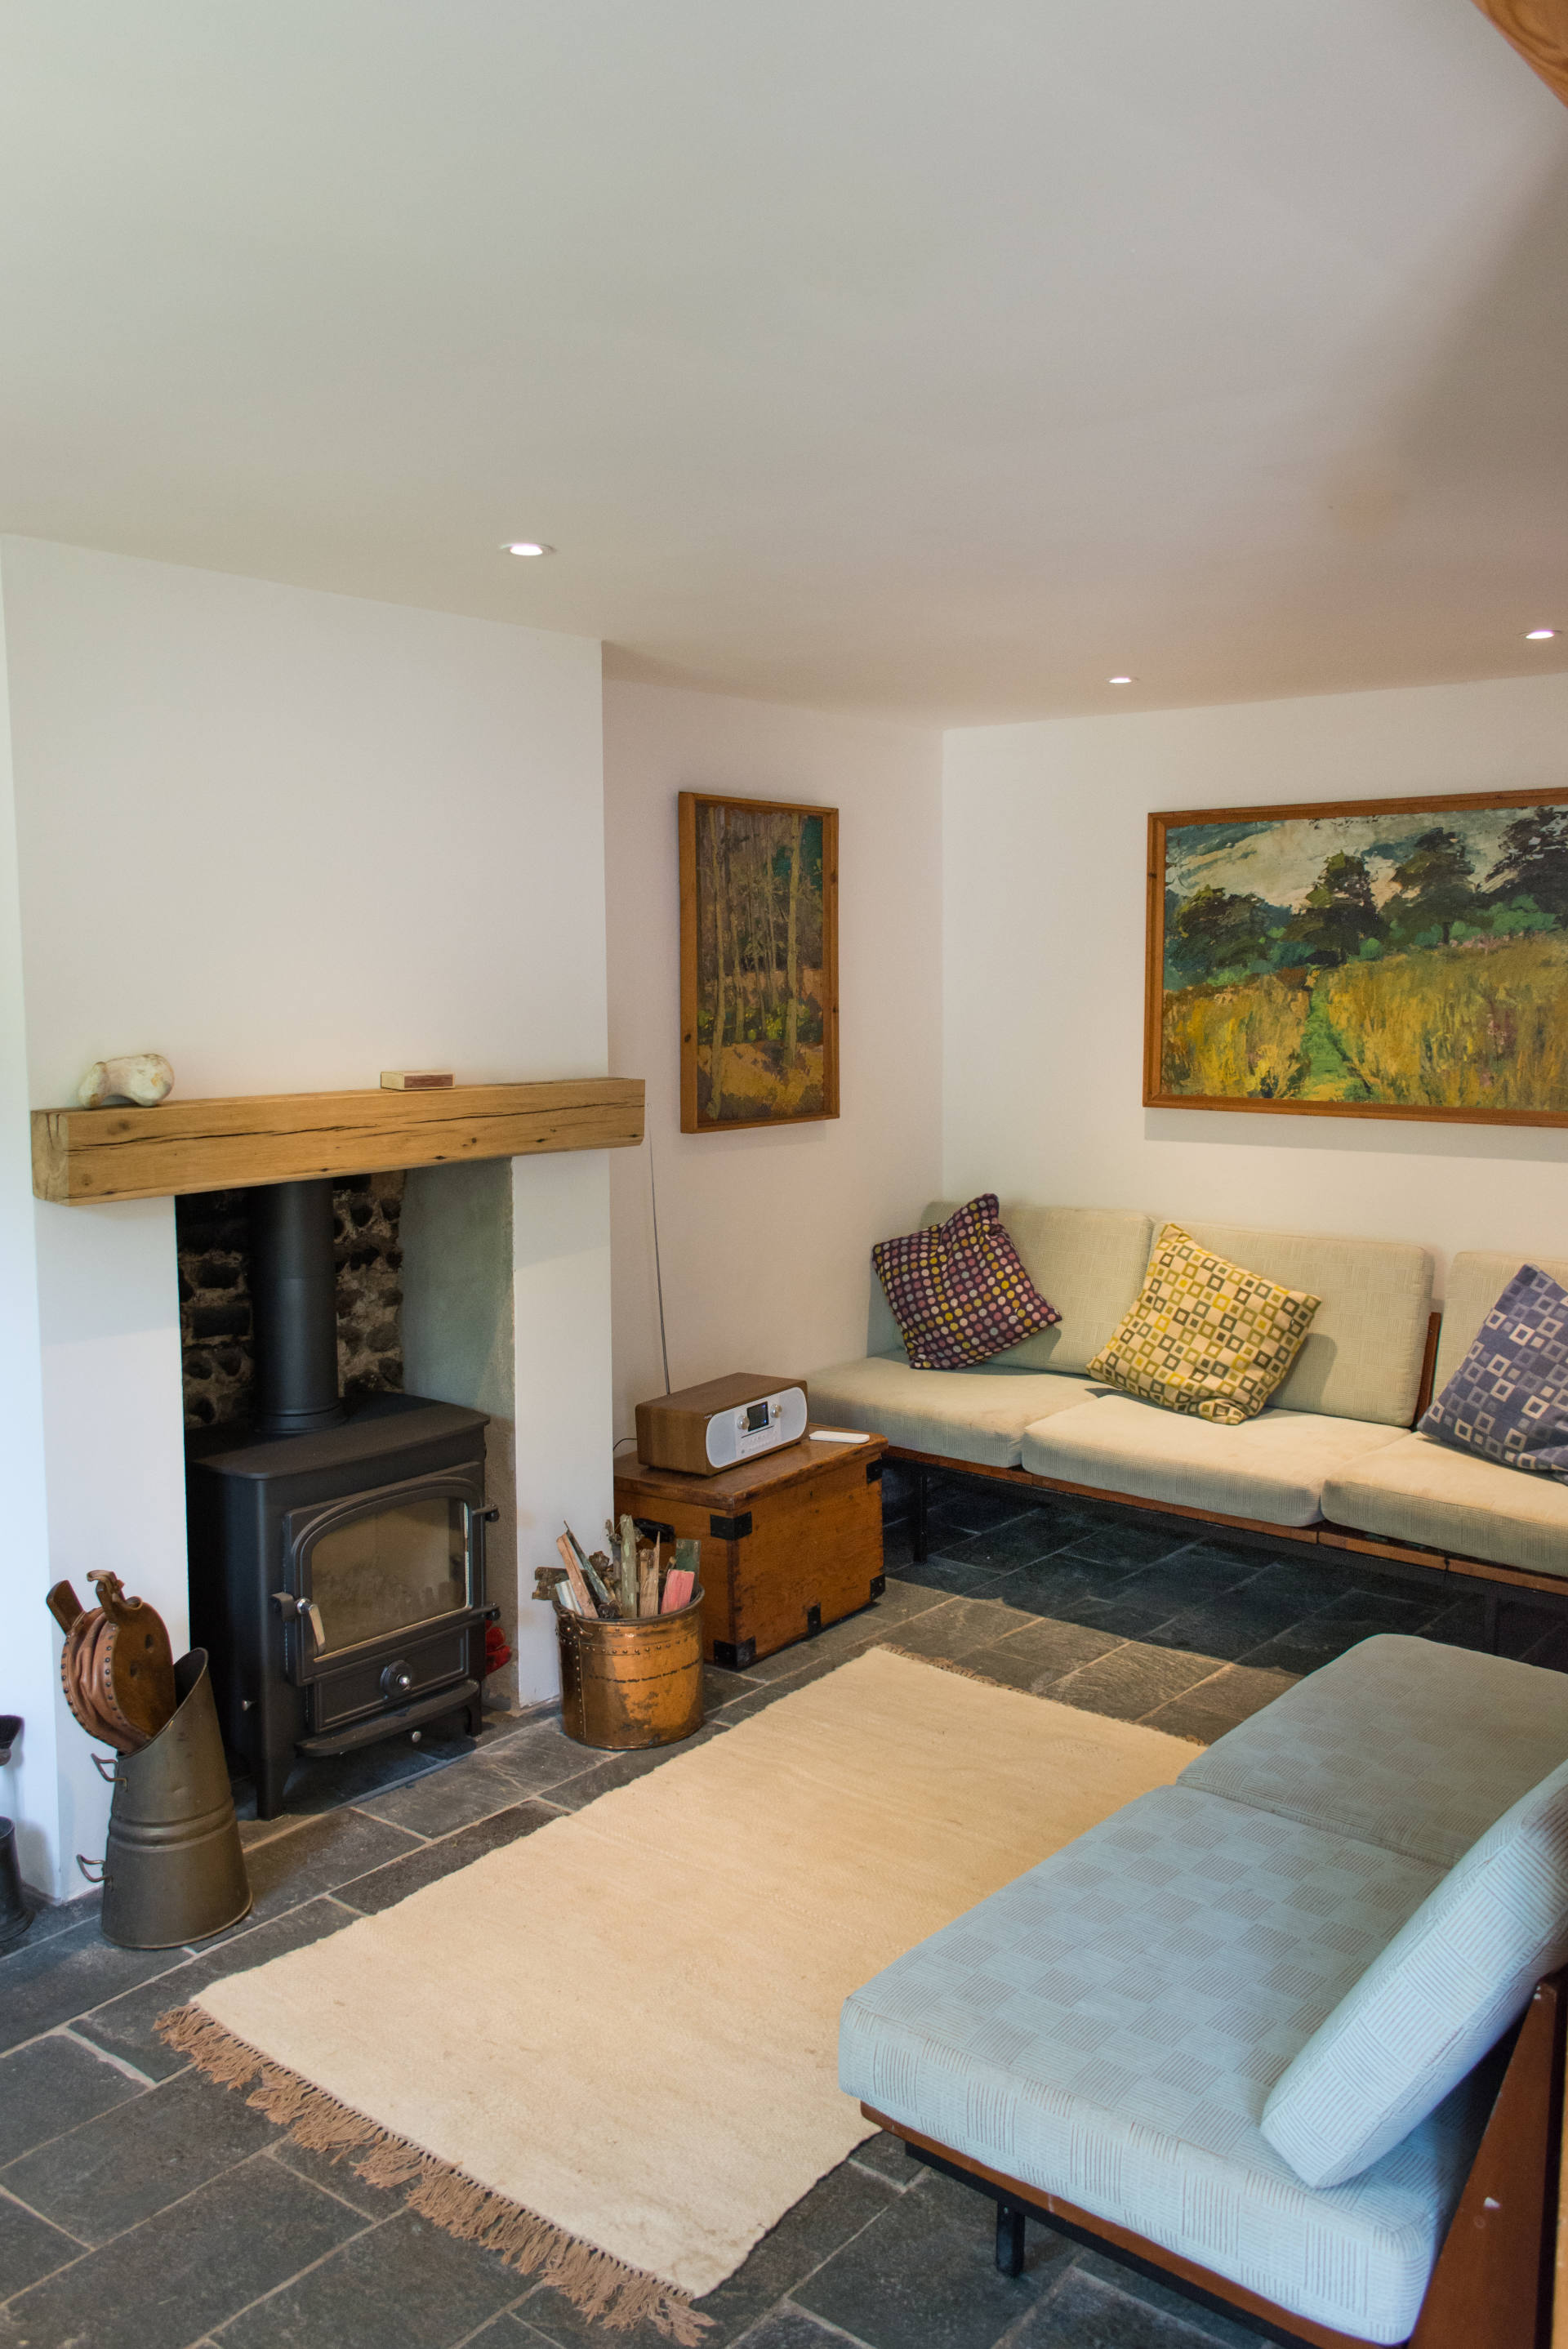 Marlpit Cottage sofas and seating areas with log burner fireplace.